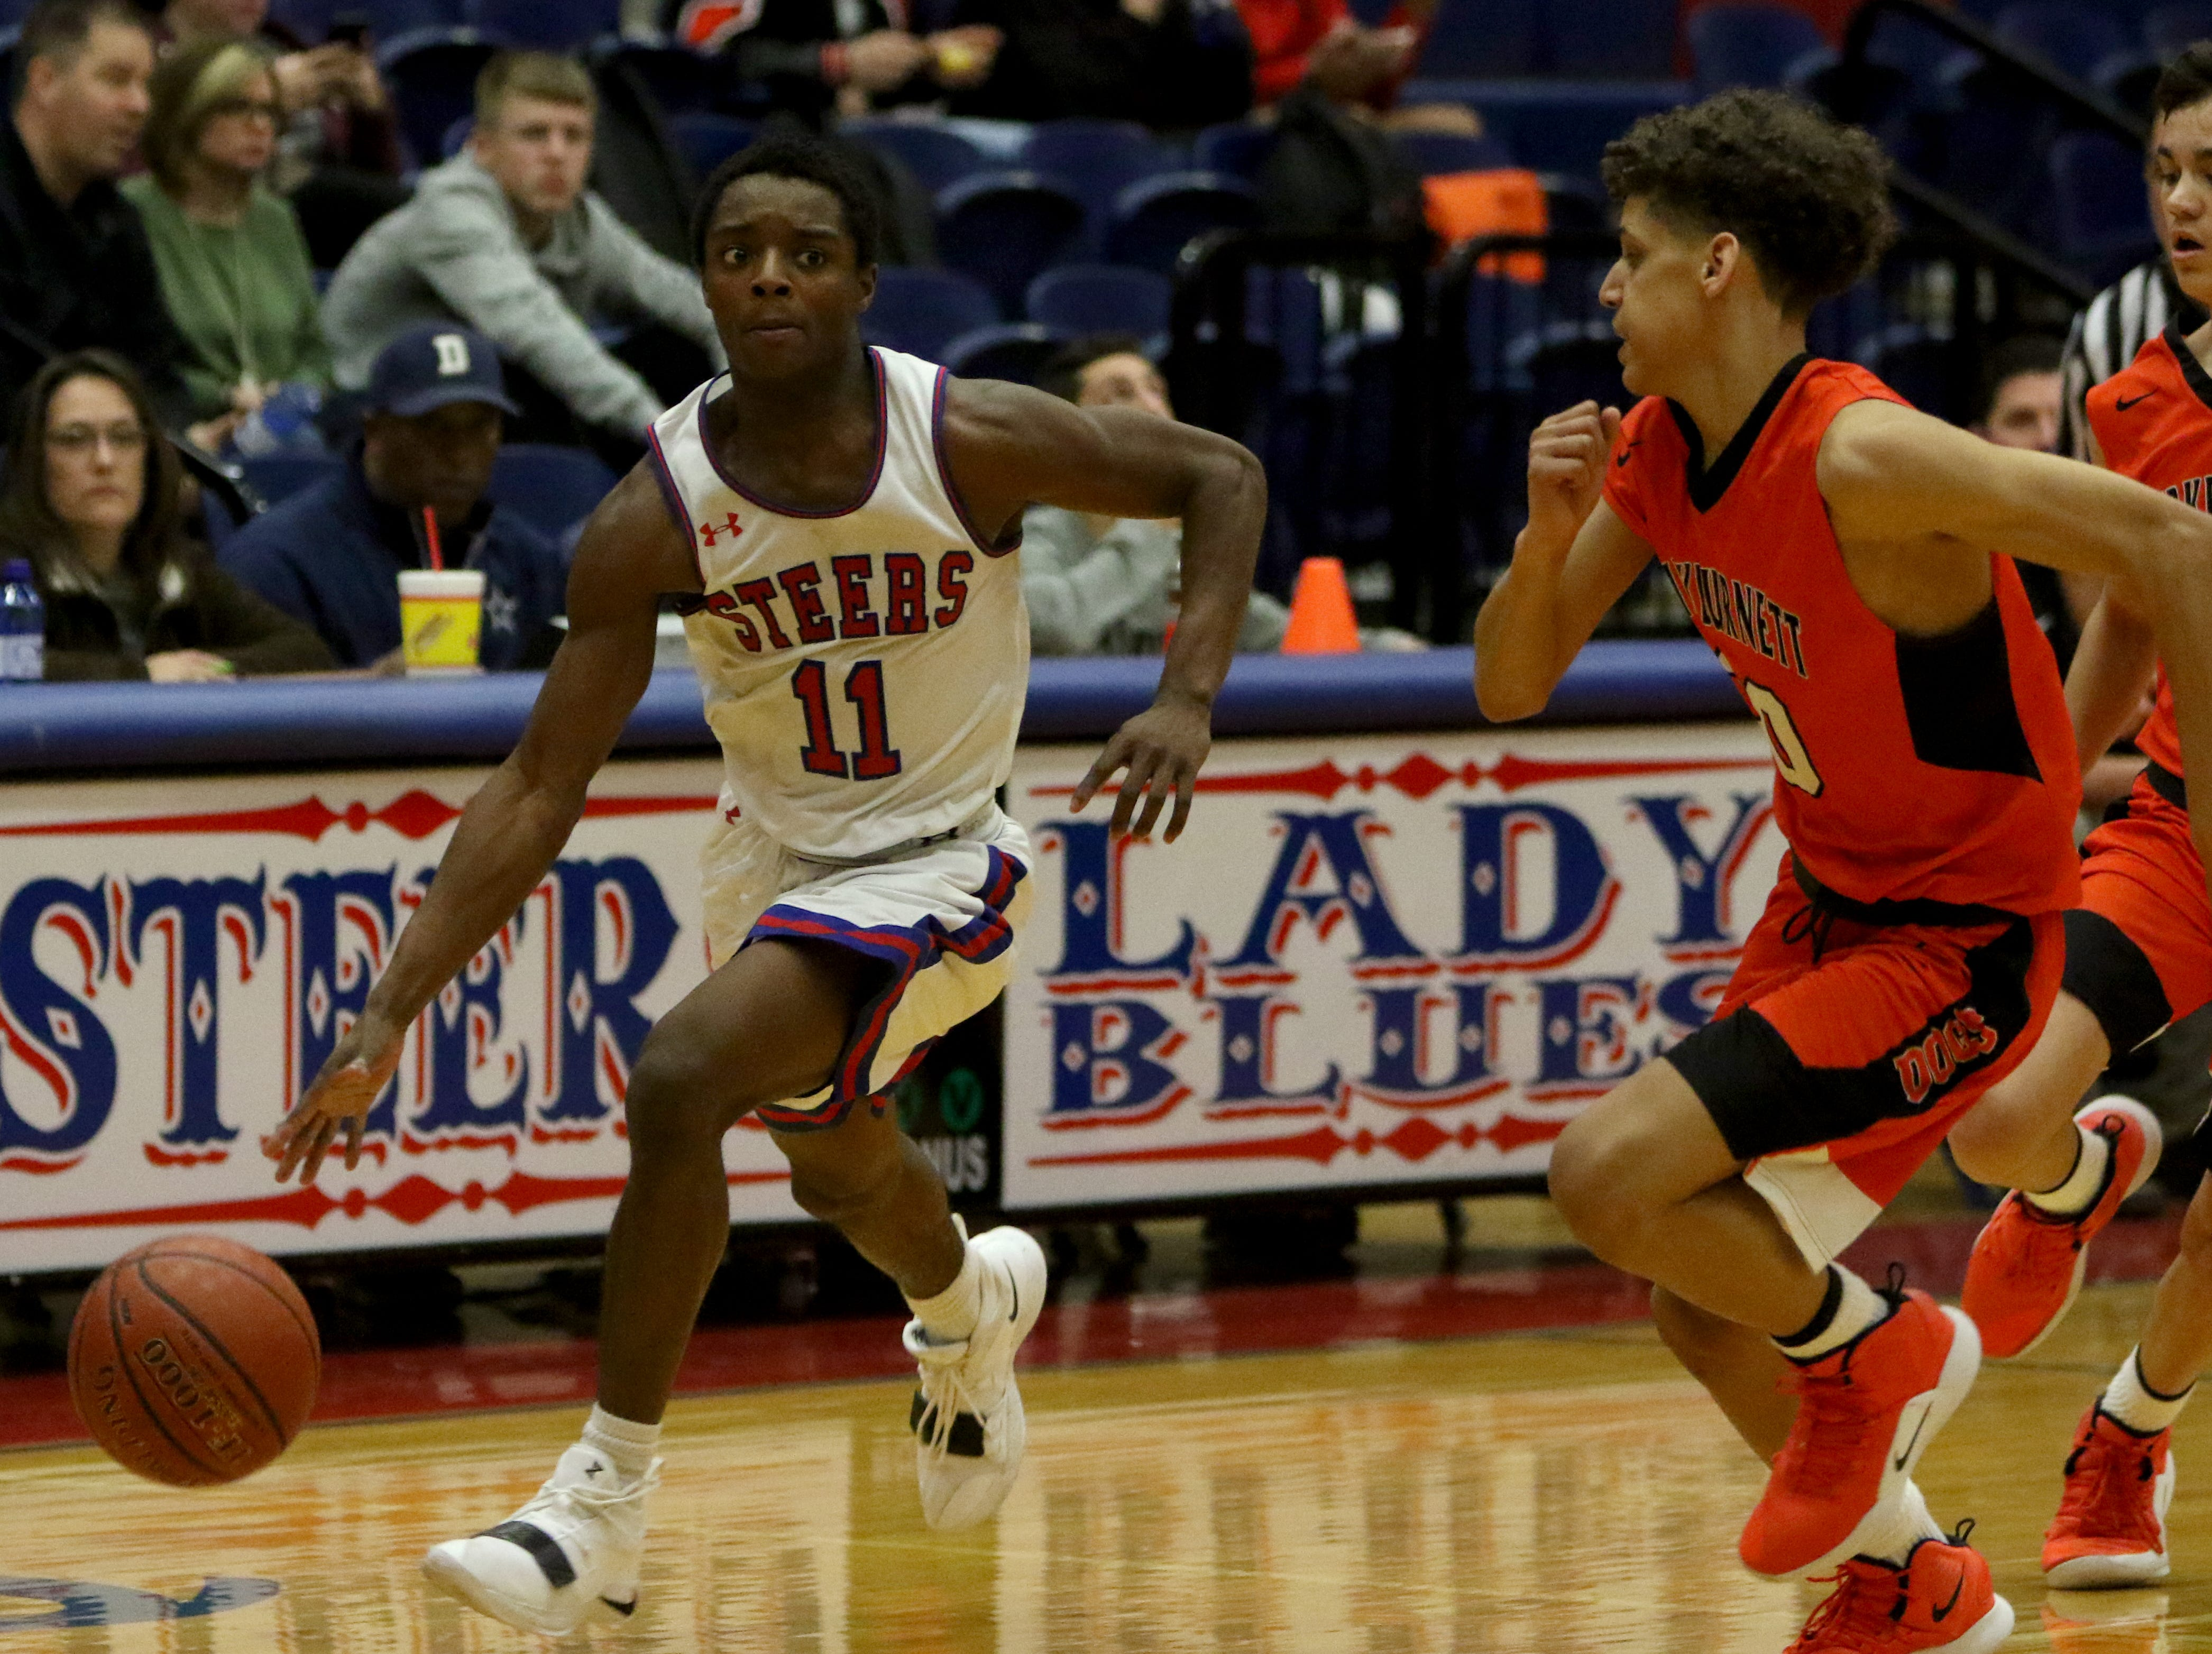 Graham's Marc Tate dribbles in the game against Burkburnett Friday, Feb. 8, 2019, in Graham. The Steers defeated the Bulldogs 75-70.